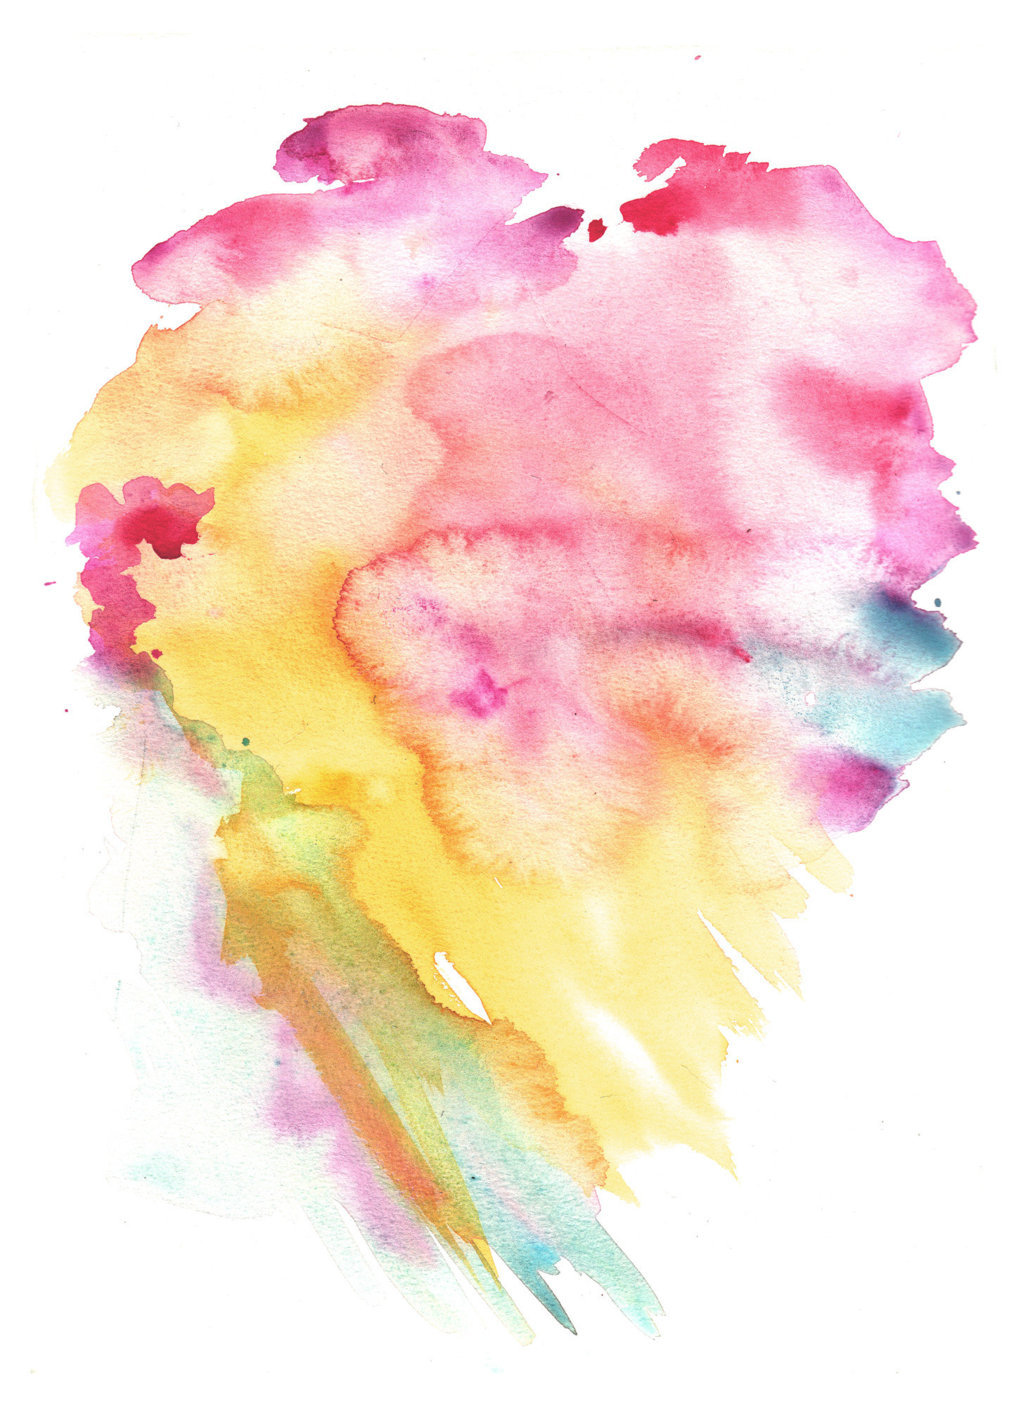 WaterColor Texture 2